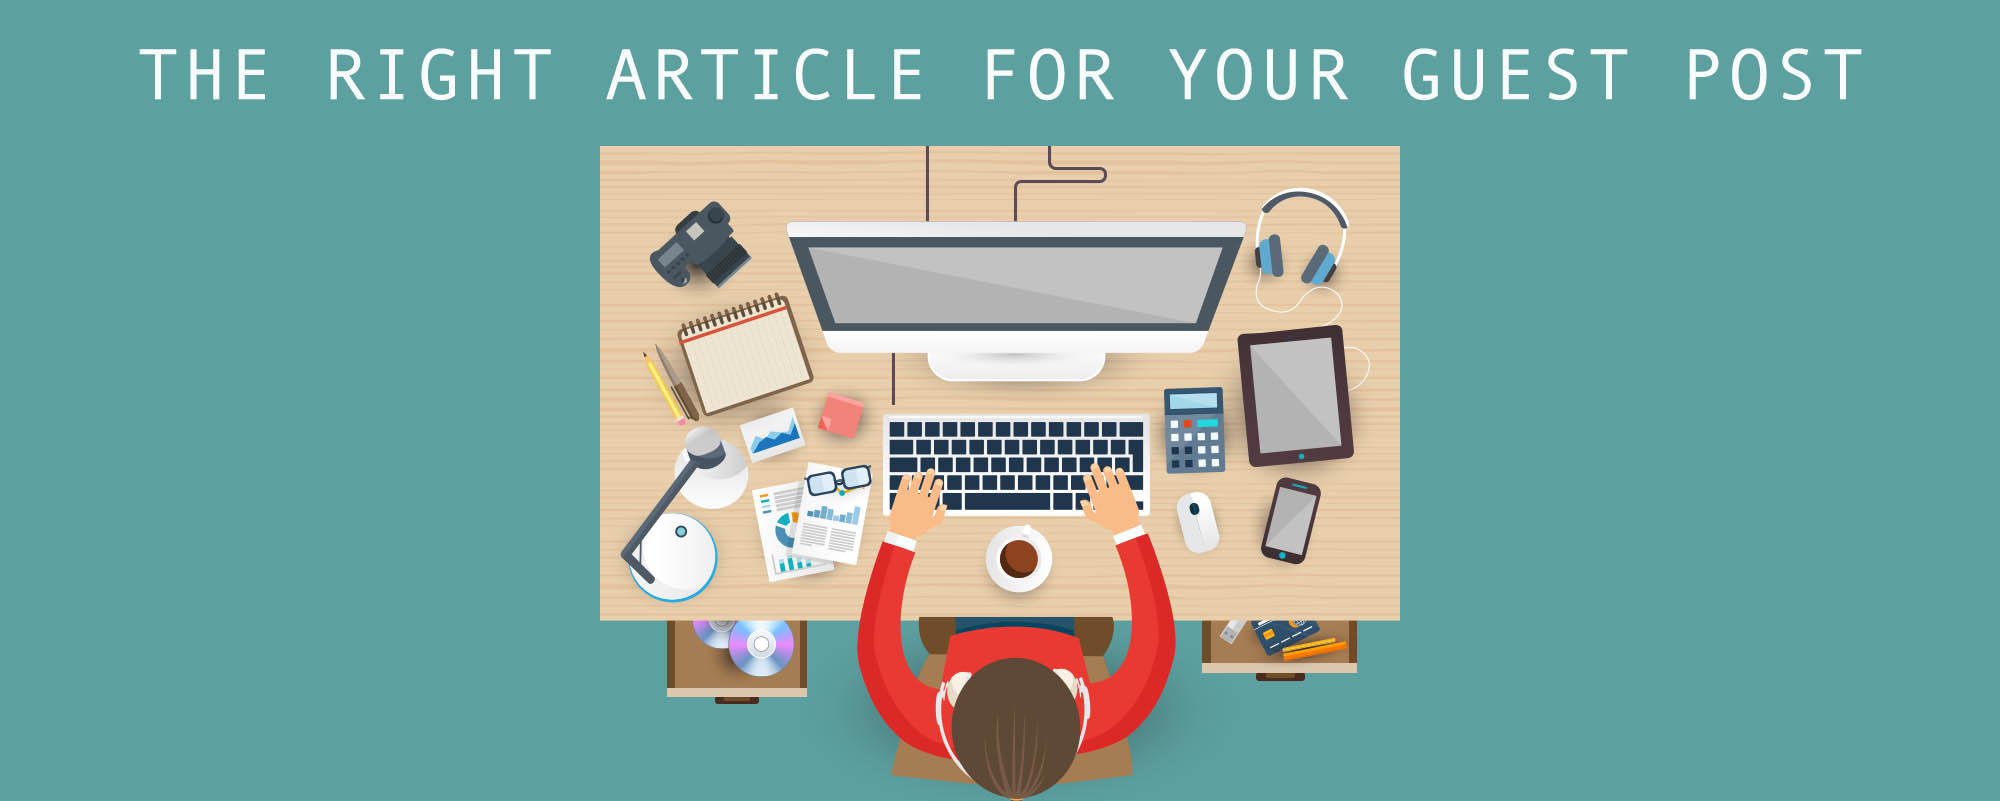 The right article for your guest post